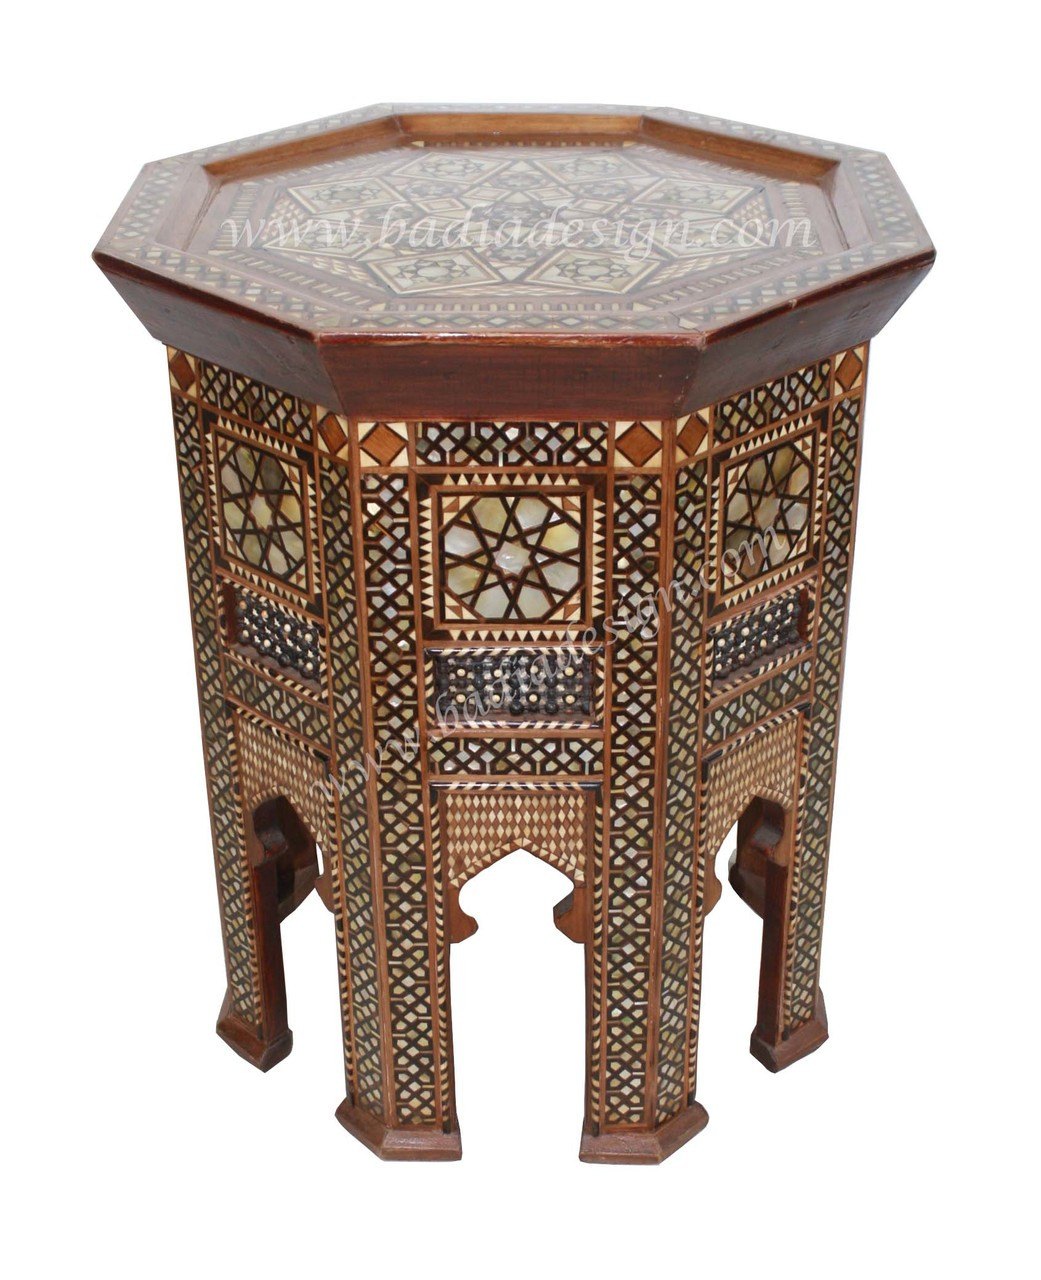 Syrian Design Inlay Side Table Furniture From Badia Design